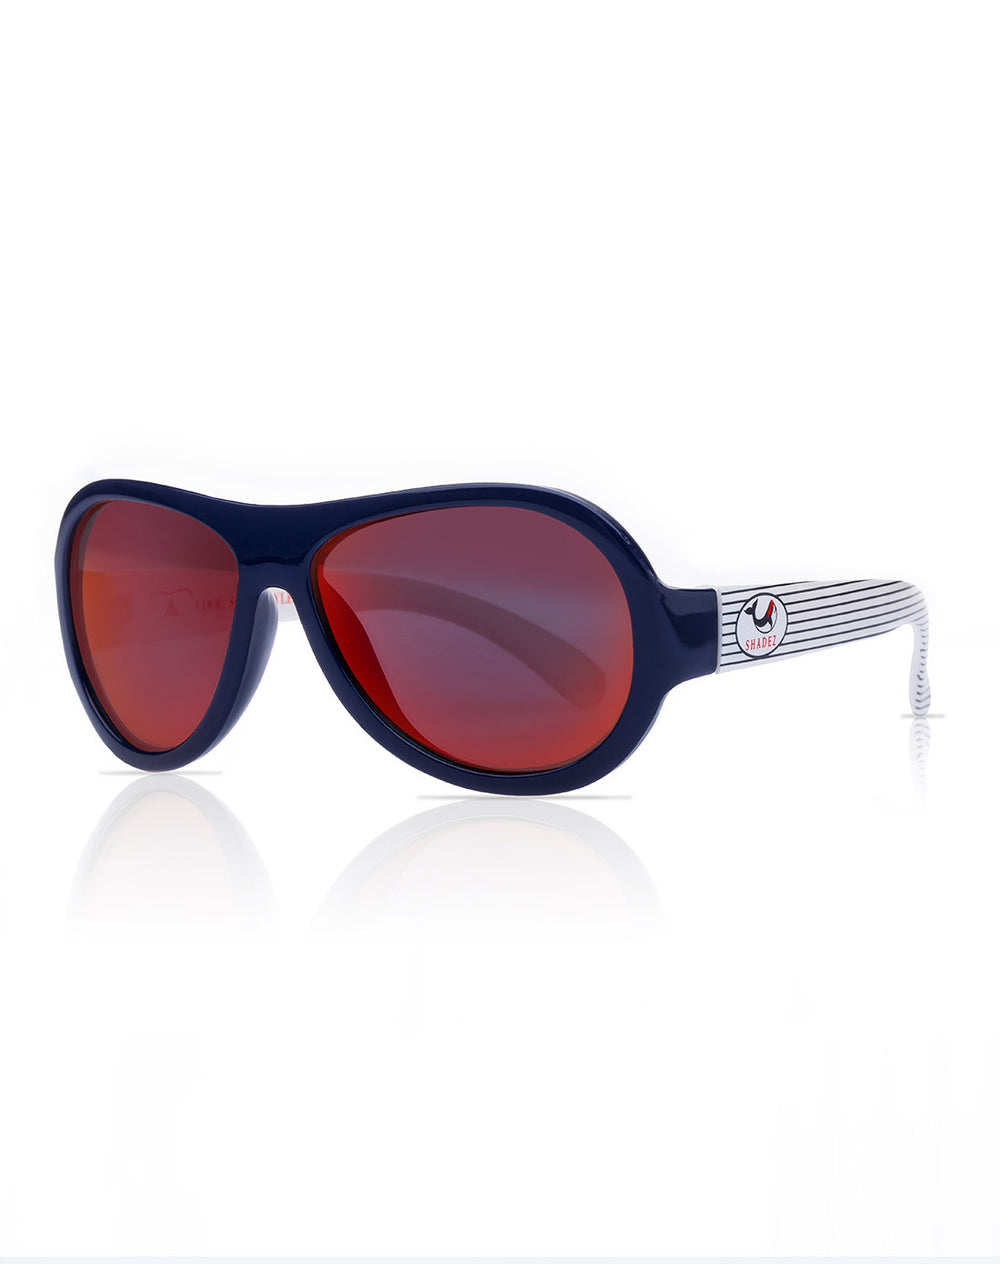 Shadez Junior Sunglasses Whale Navy Stripes - 3-7years